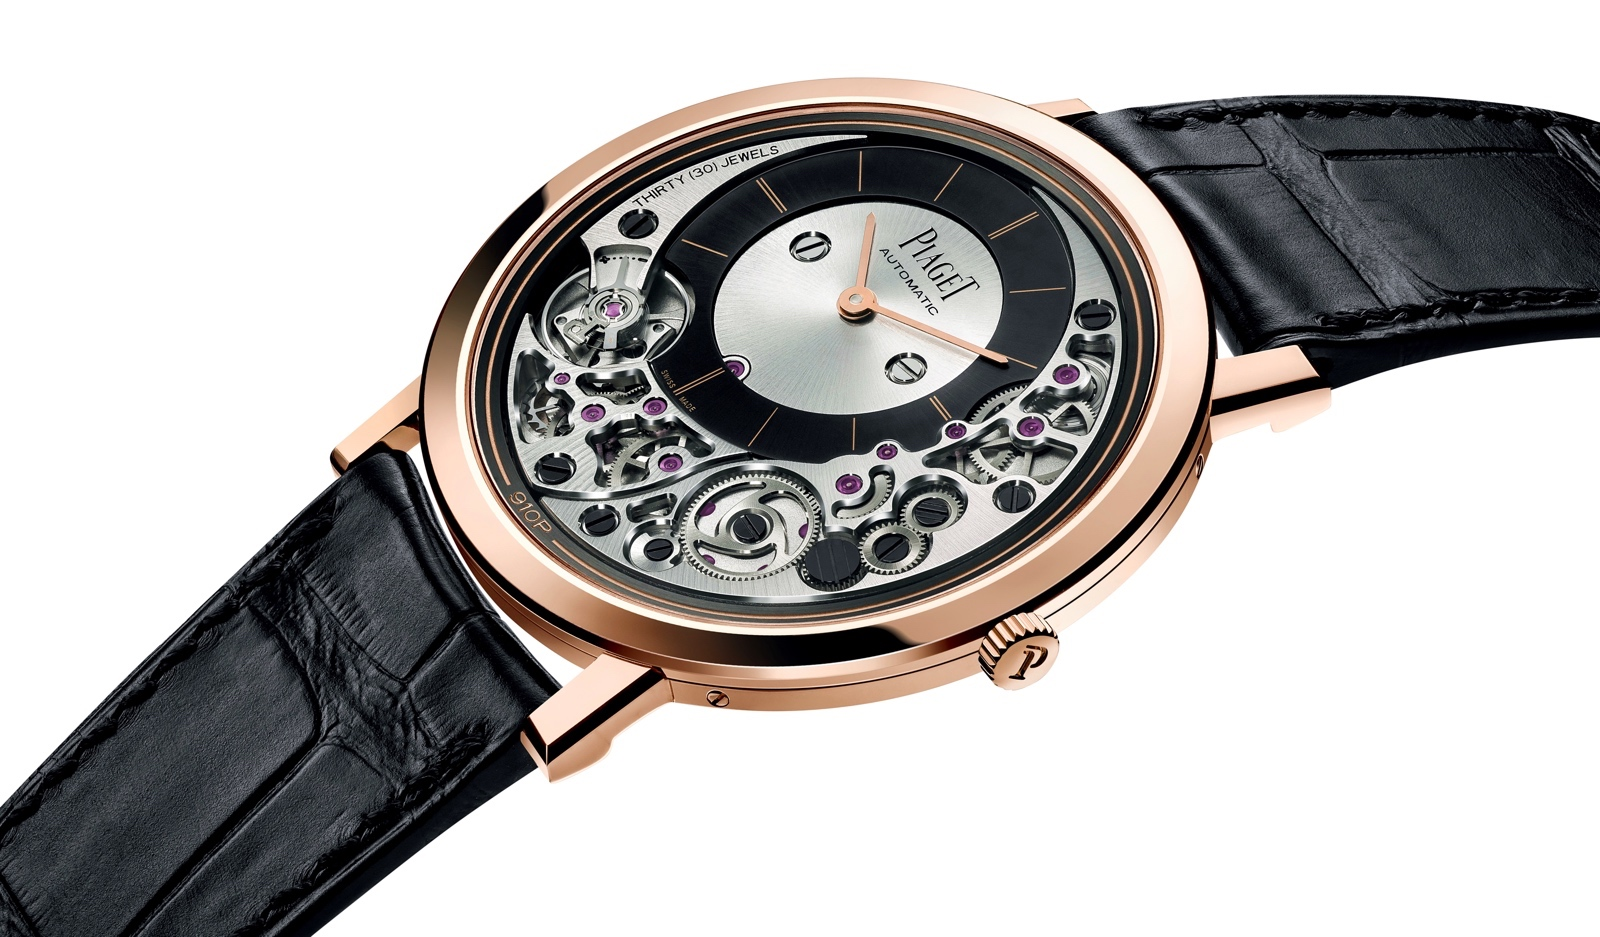 Piaget Altiplano Ultimate Automatic 910P - perfil caja